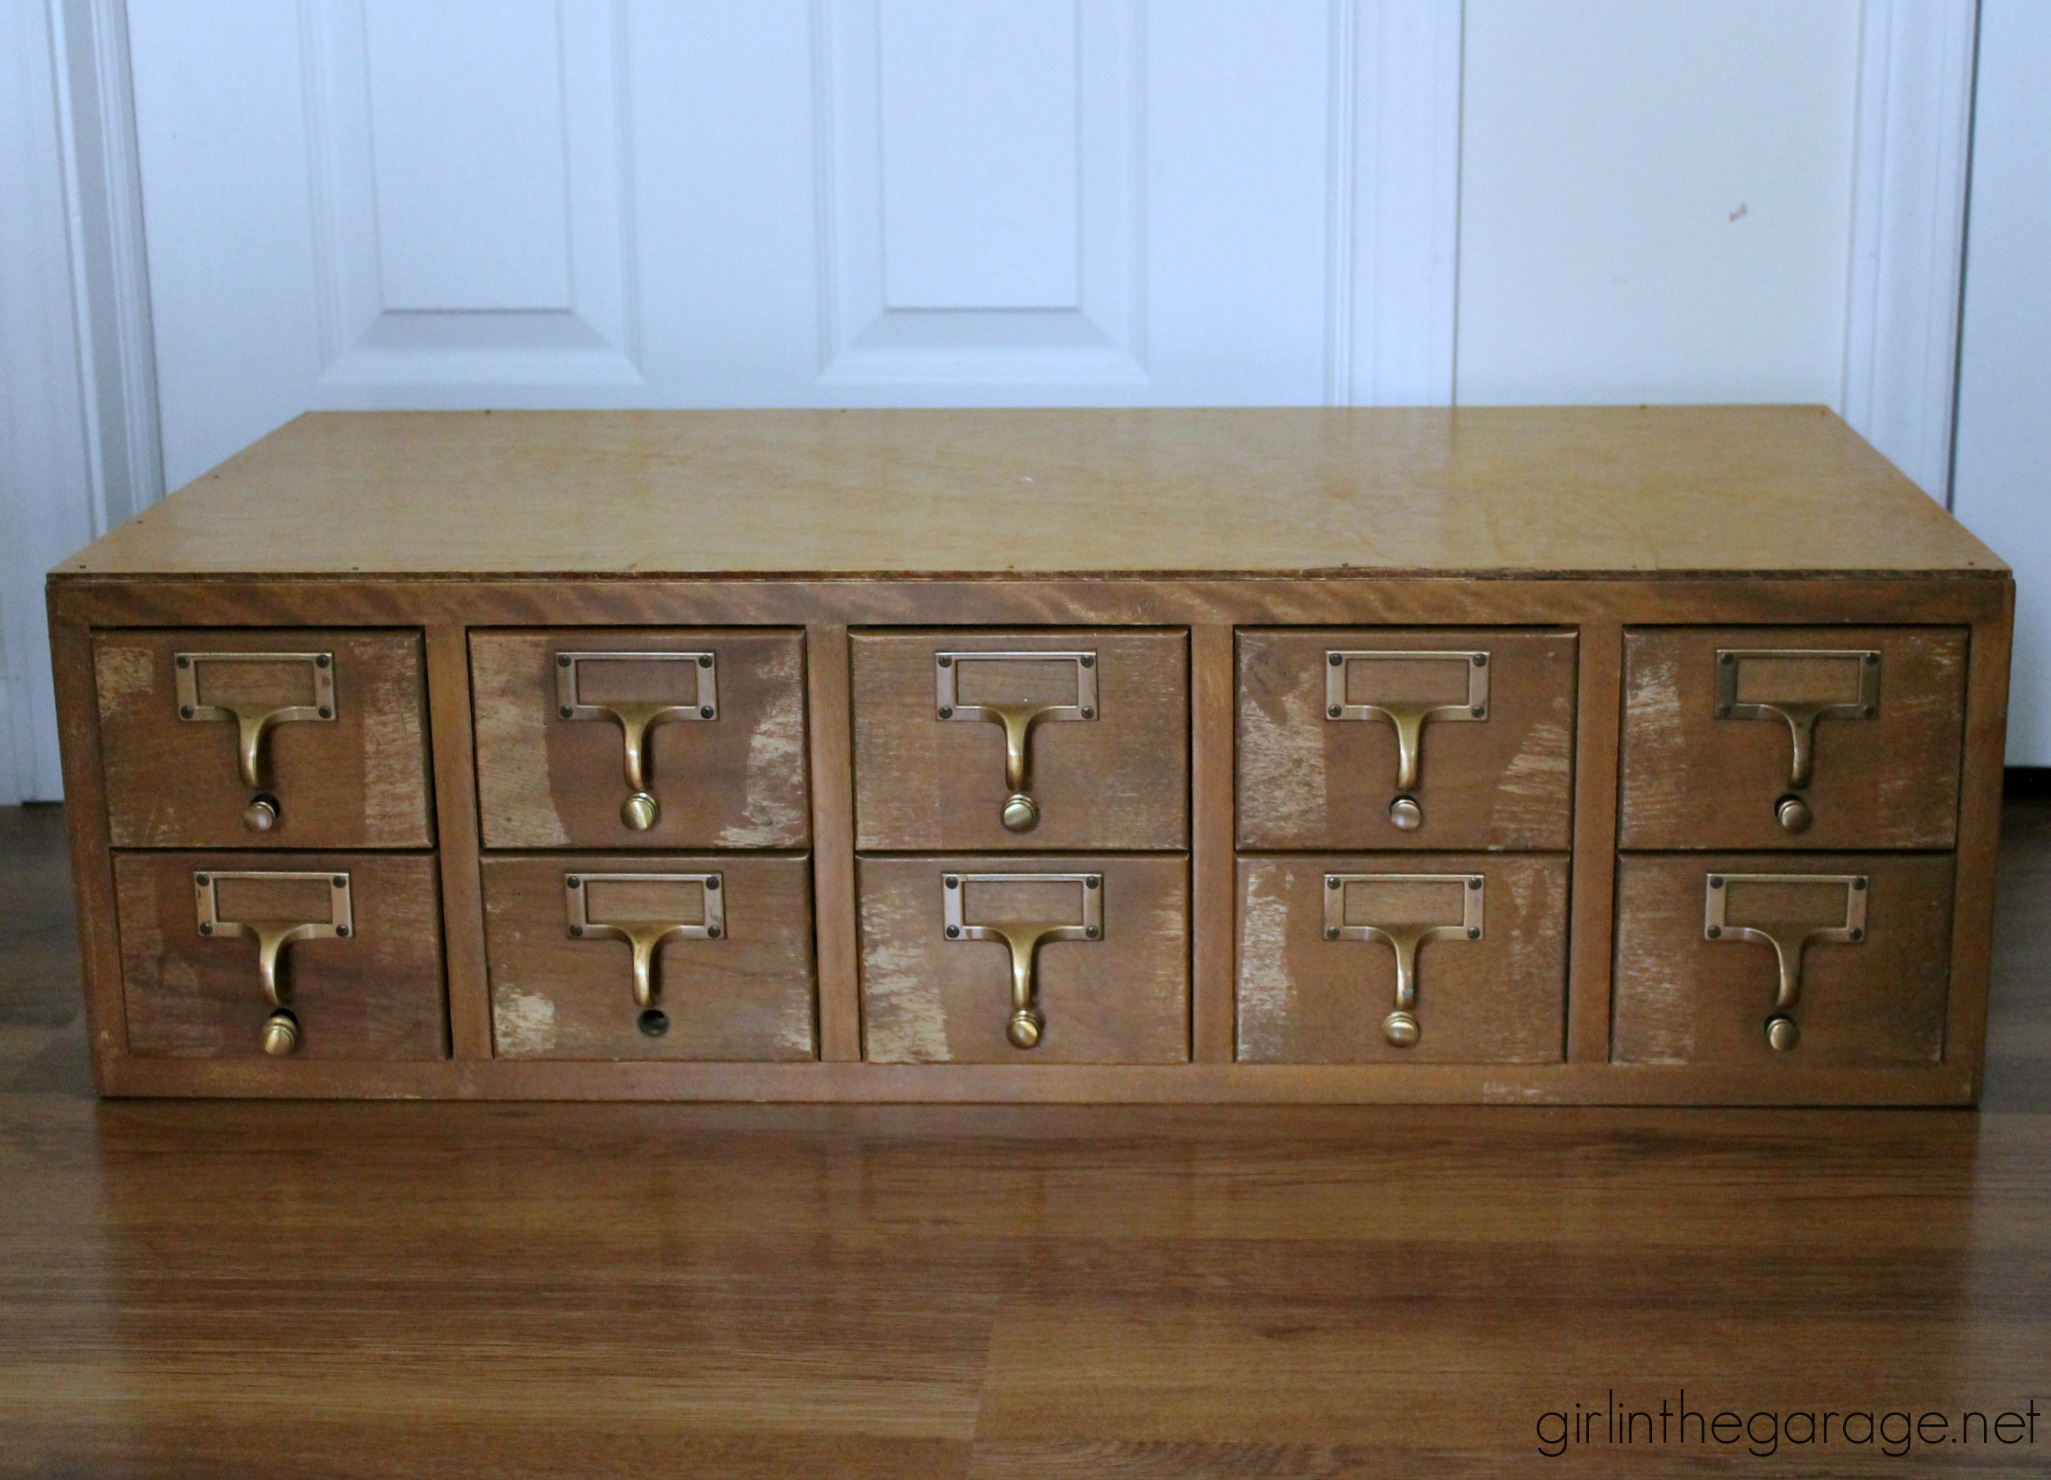 Vintage Card Catalog - Girl in the Garage